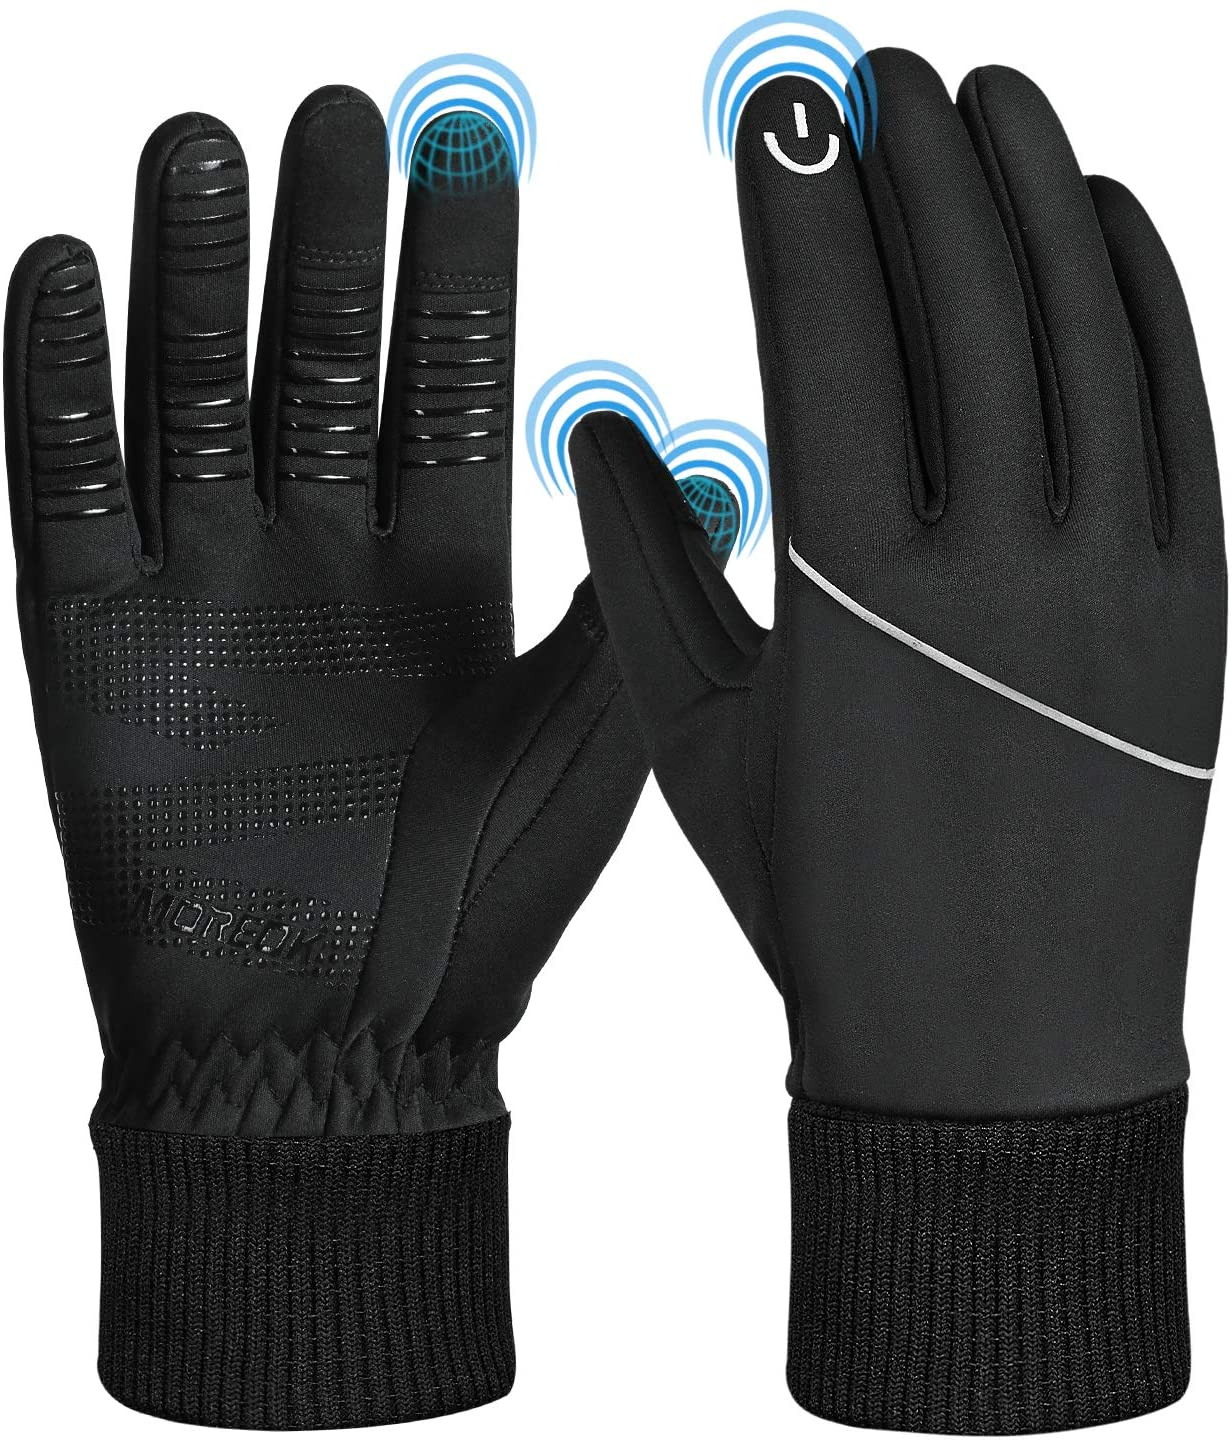 MOREOK Winter Gloves Running Gloves Men Women Touch Screen Gloves Water Resistant Windproof Warm Gloves for Running Driving Cycling